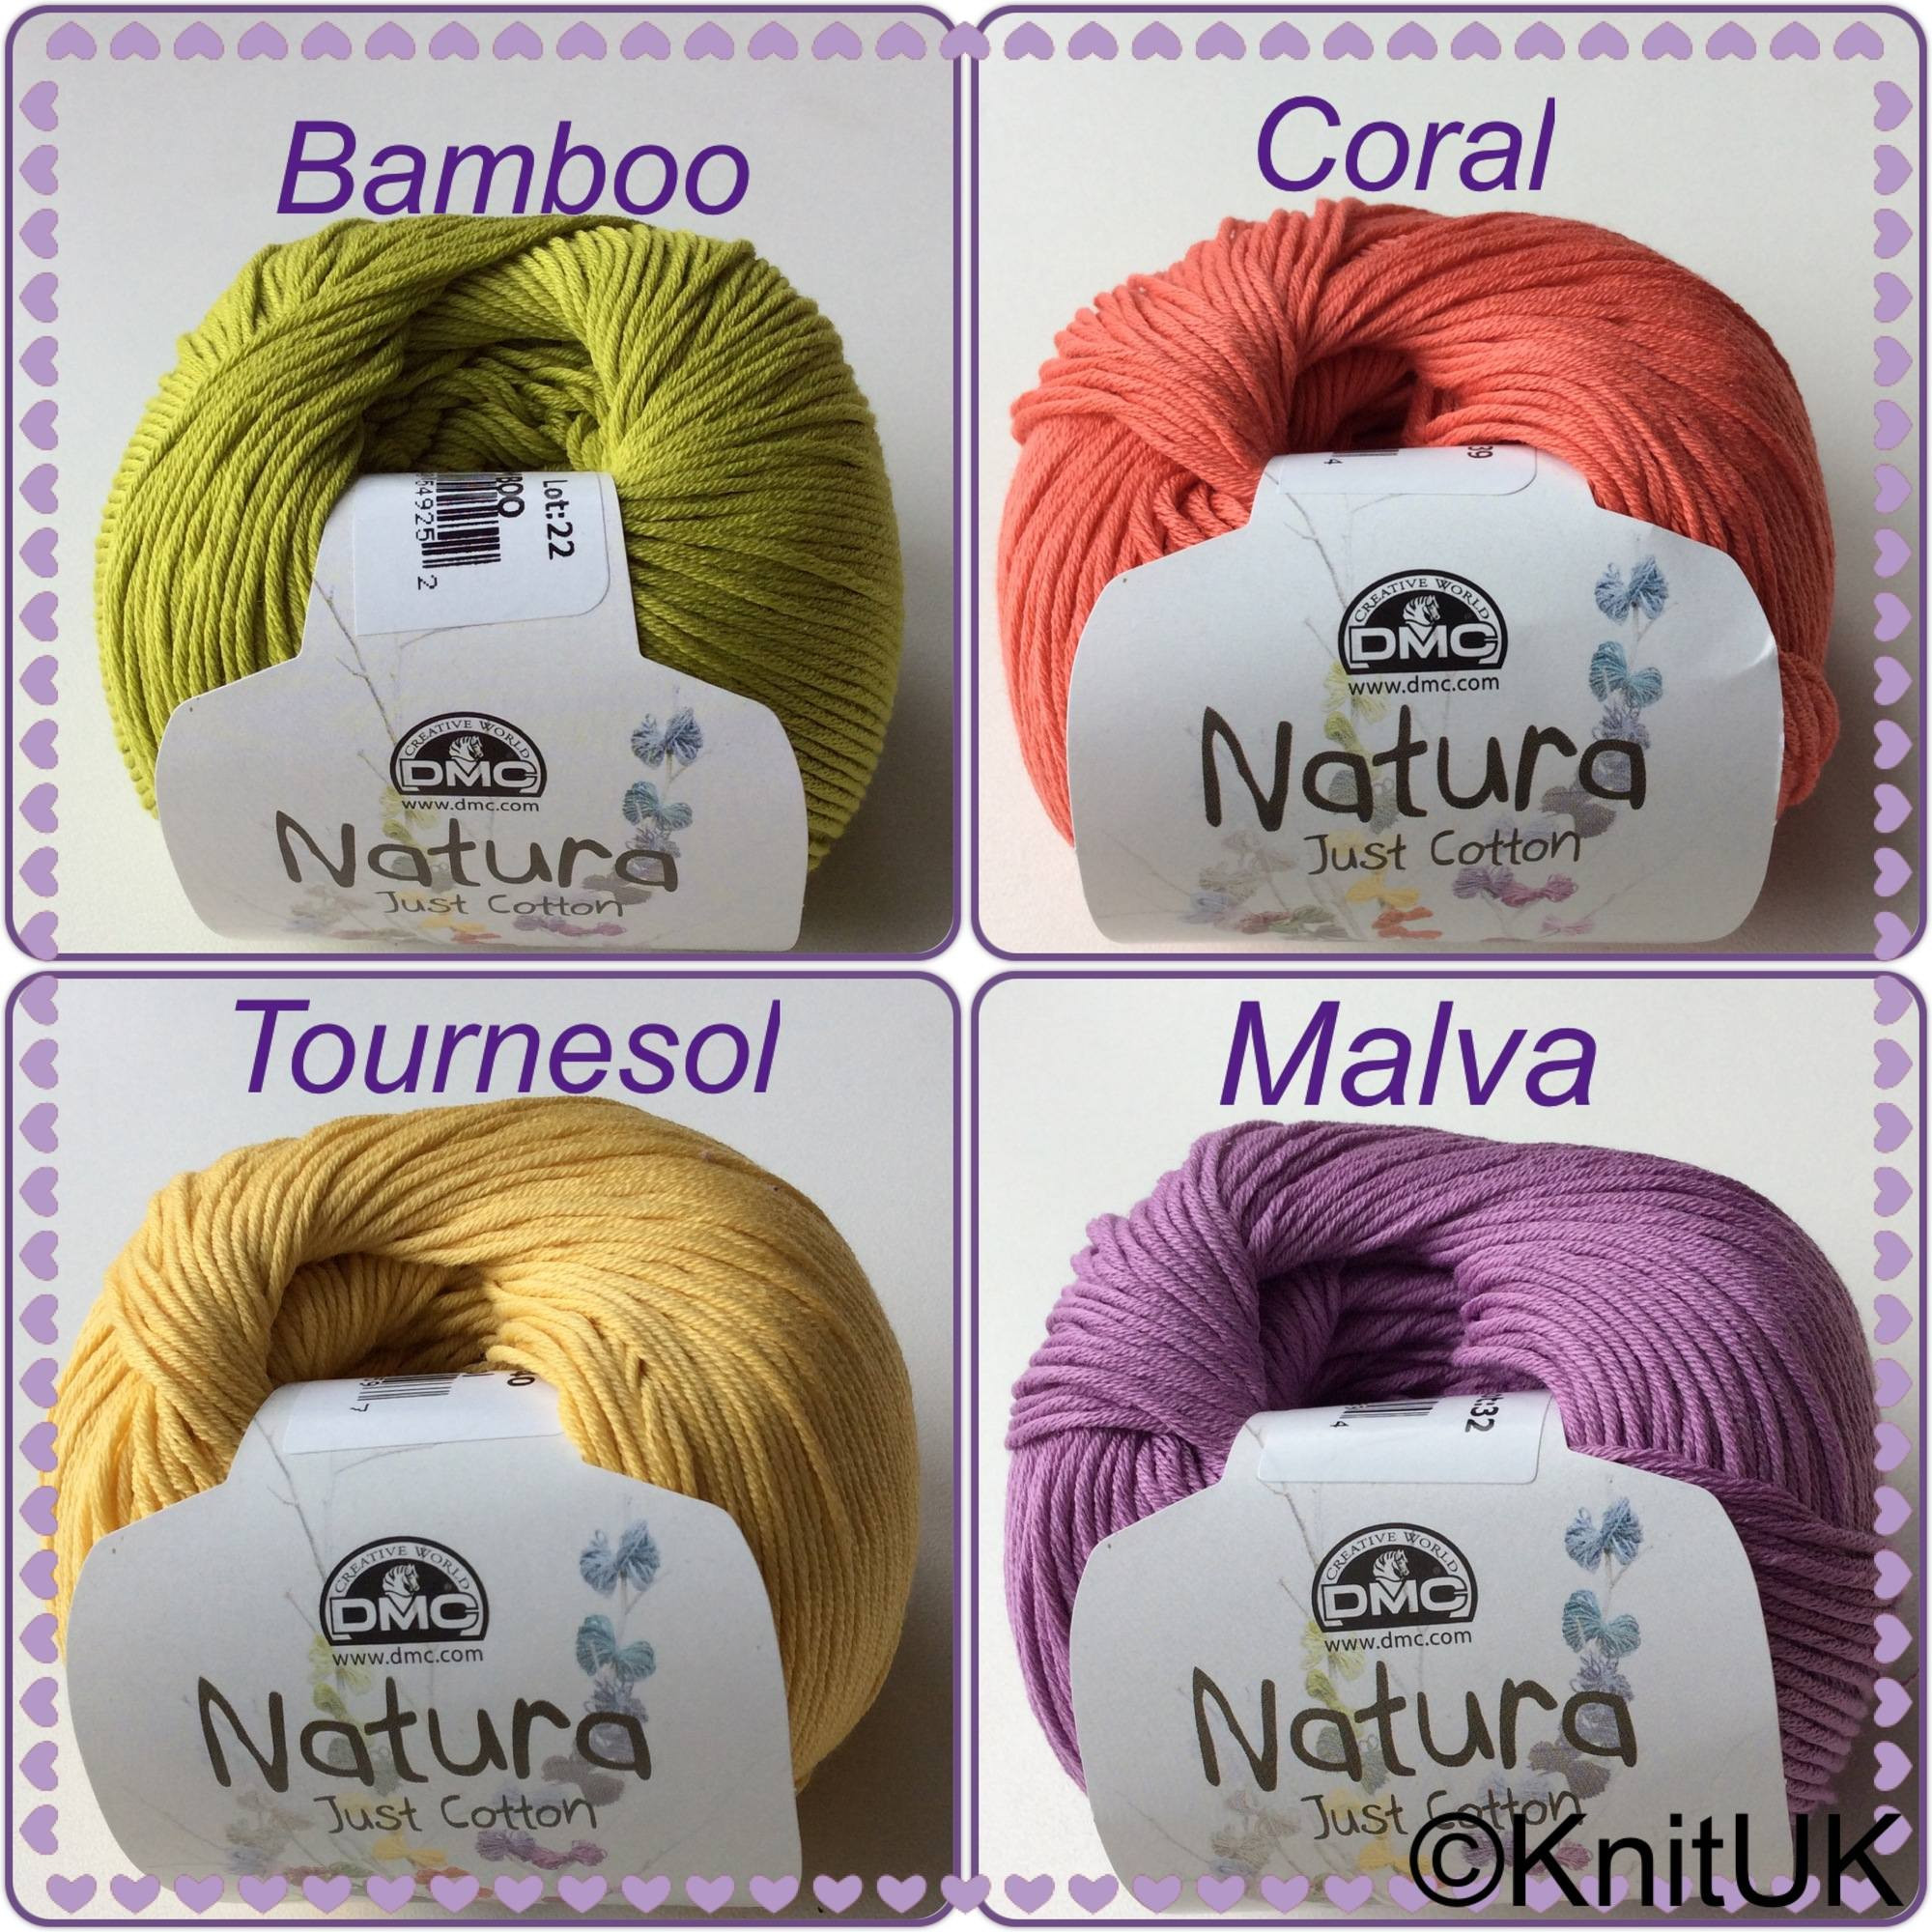 Dmc Natura Just Cotton Lovely Dmc Natura Just Cotton Yarn Of Amazing 45 Ideas Dmc Natura Just Cotton